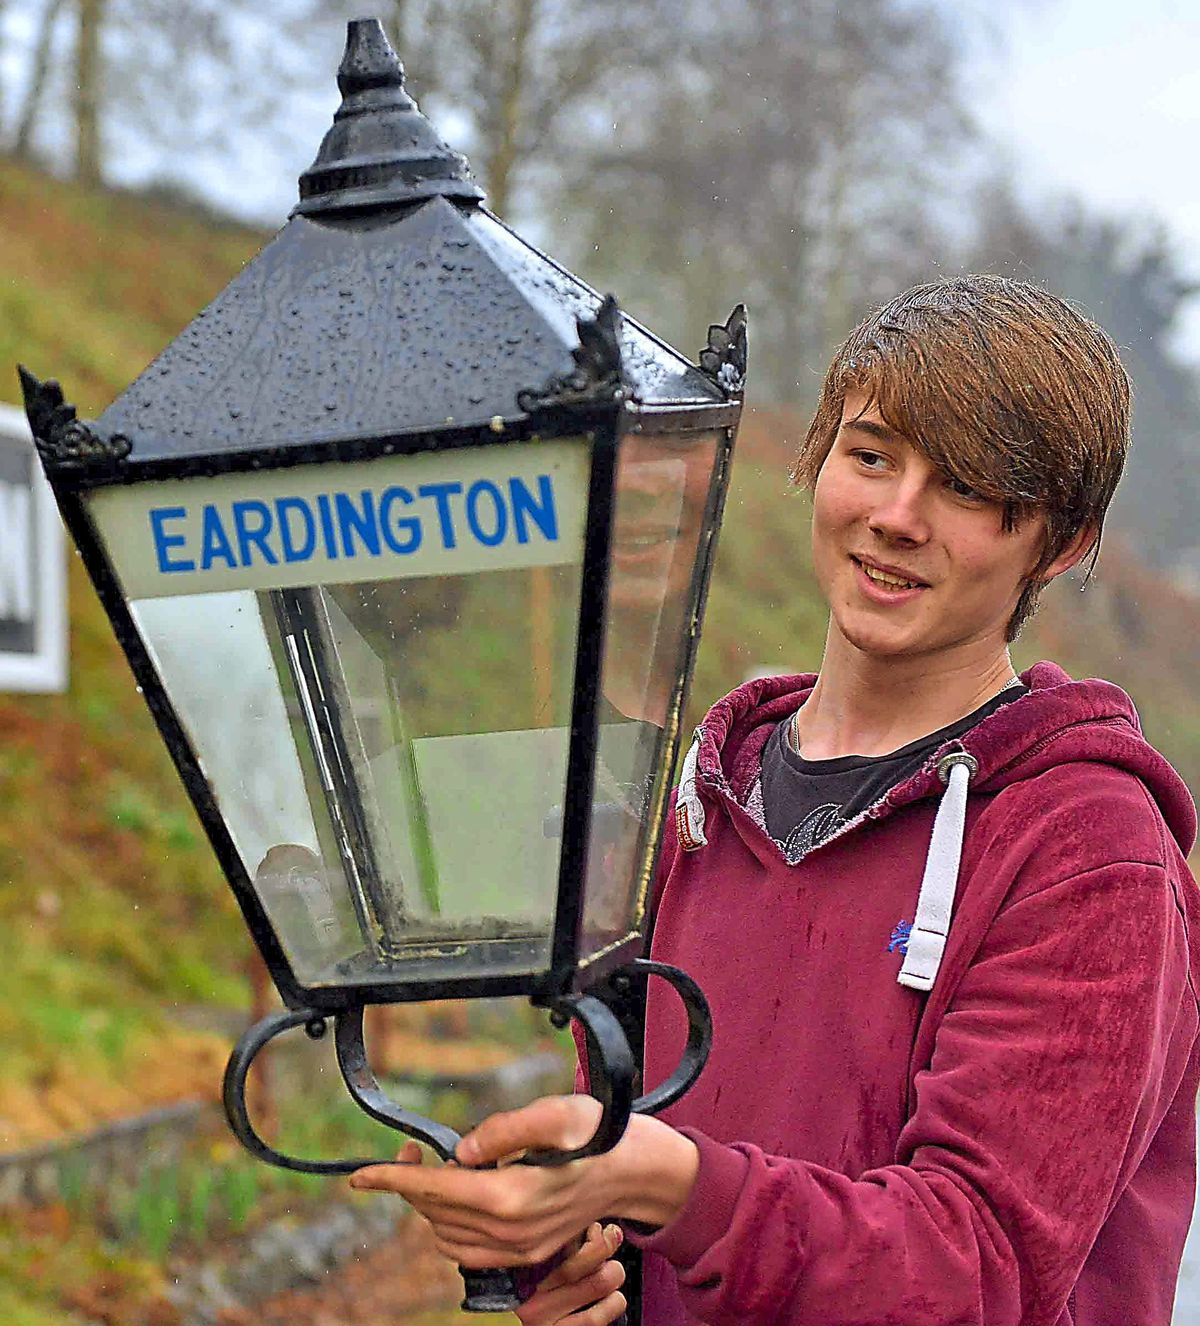 Ben Nicholls 17 from Telford with the station lamp